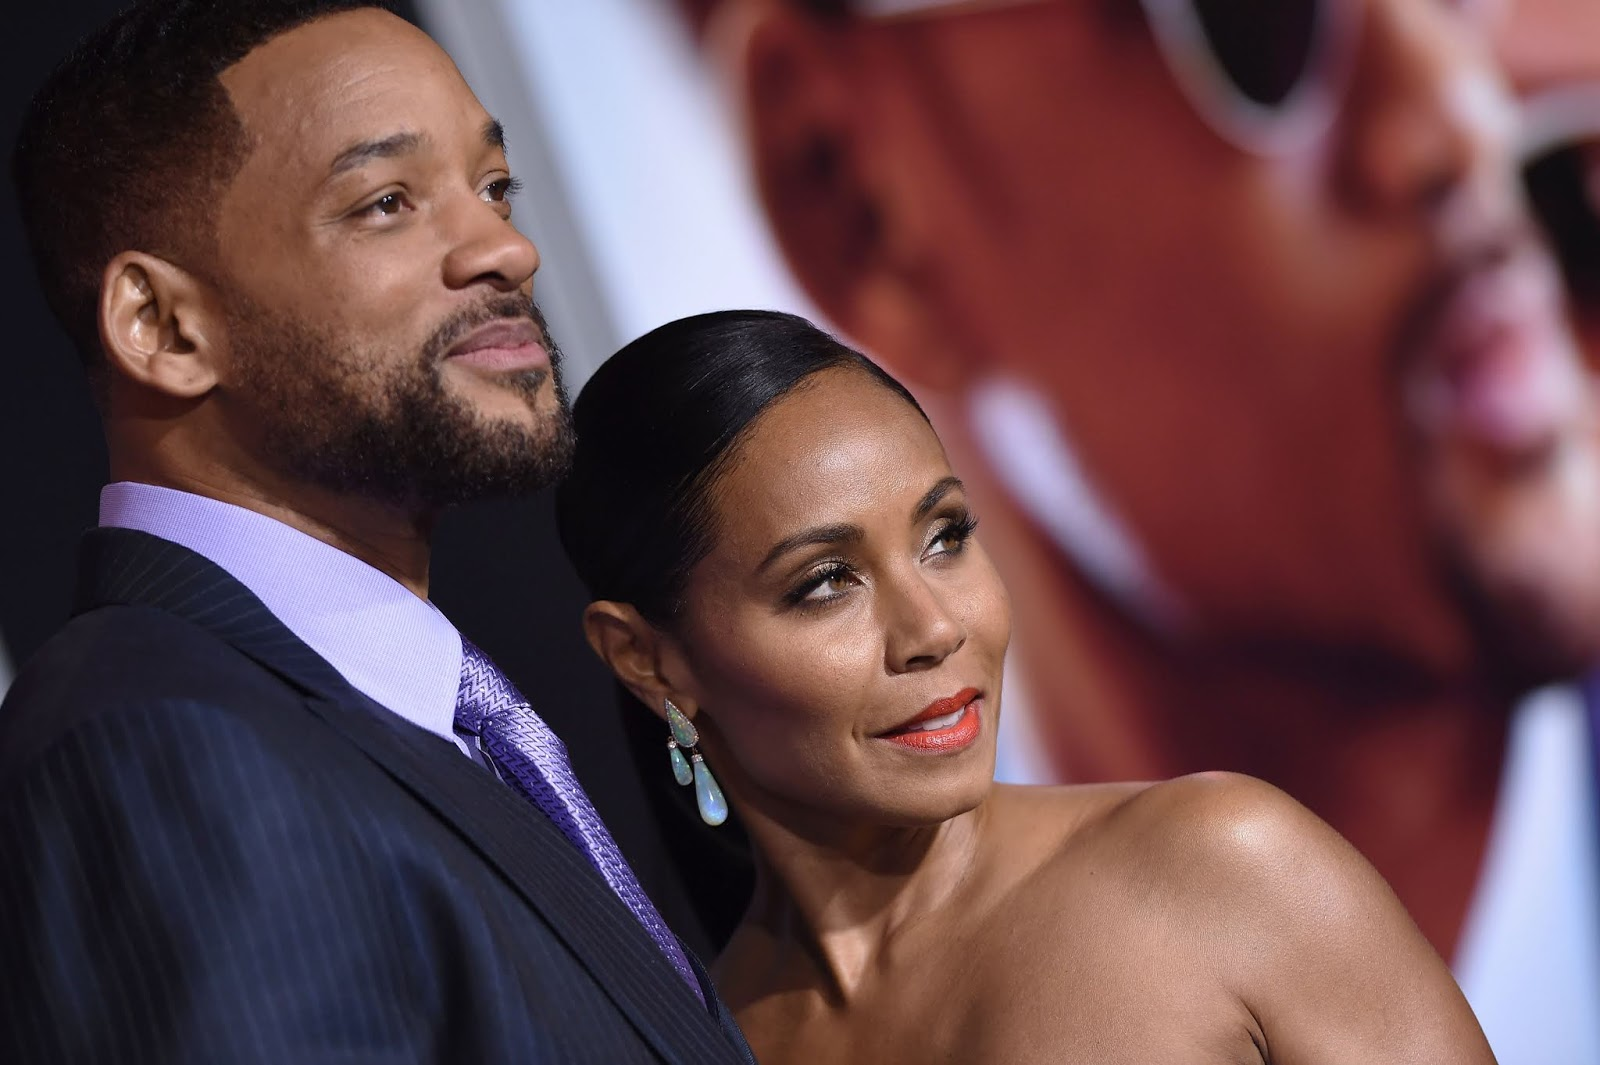 Jada Pinkett Smith's Home Workout Is The Real Deal, And She Looks Great Doing It (Video)